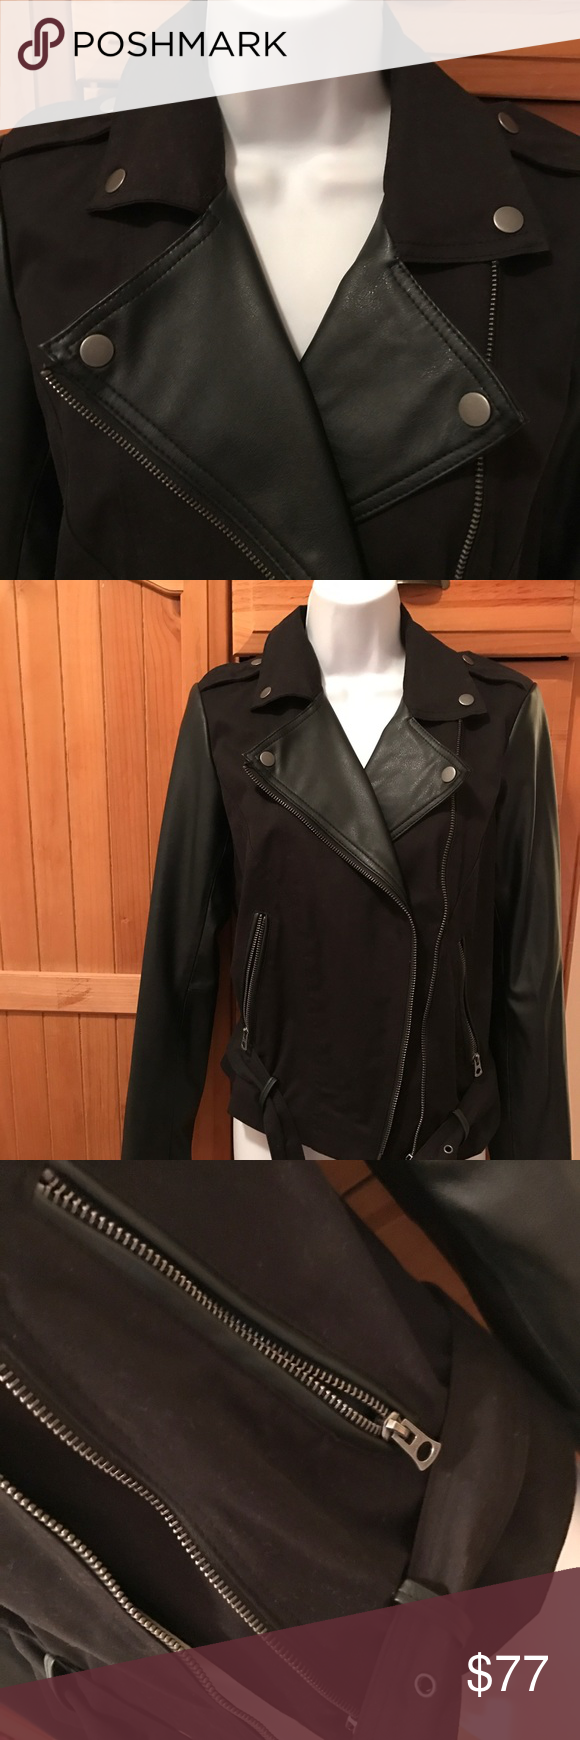 Lucky Brand Faux Leather Motorcycle Jacket S 189 Faux